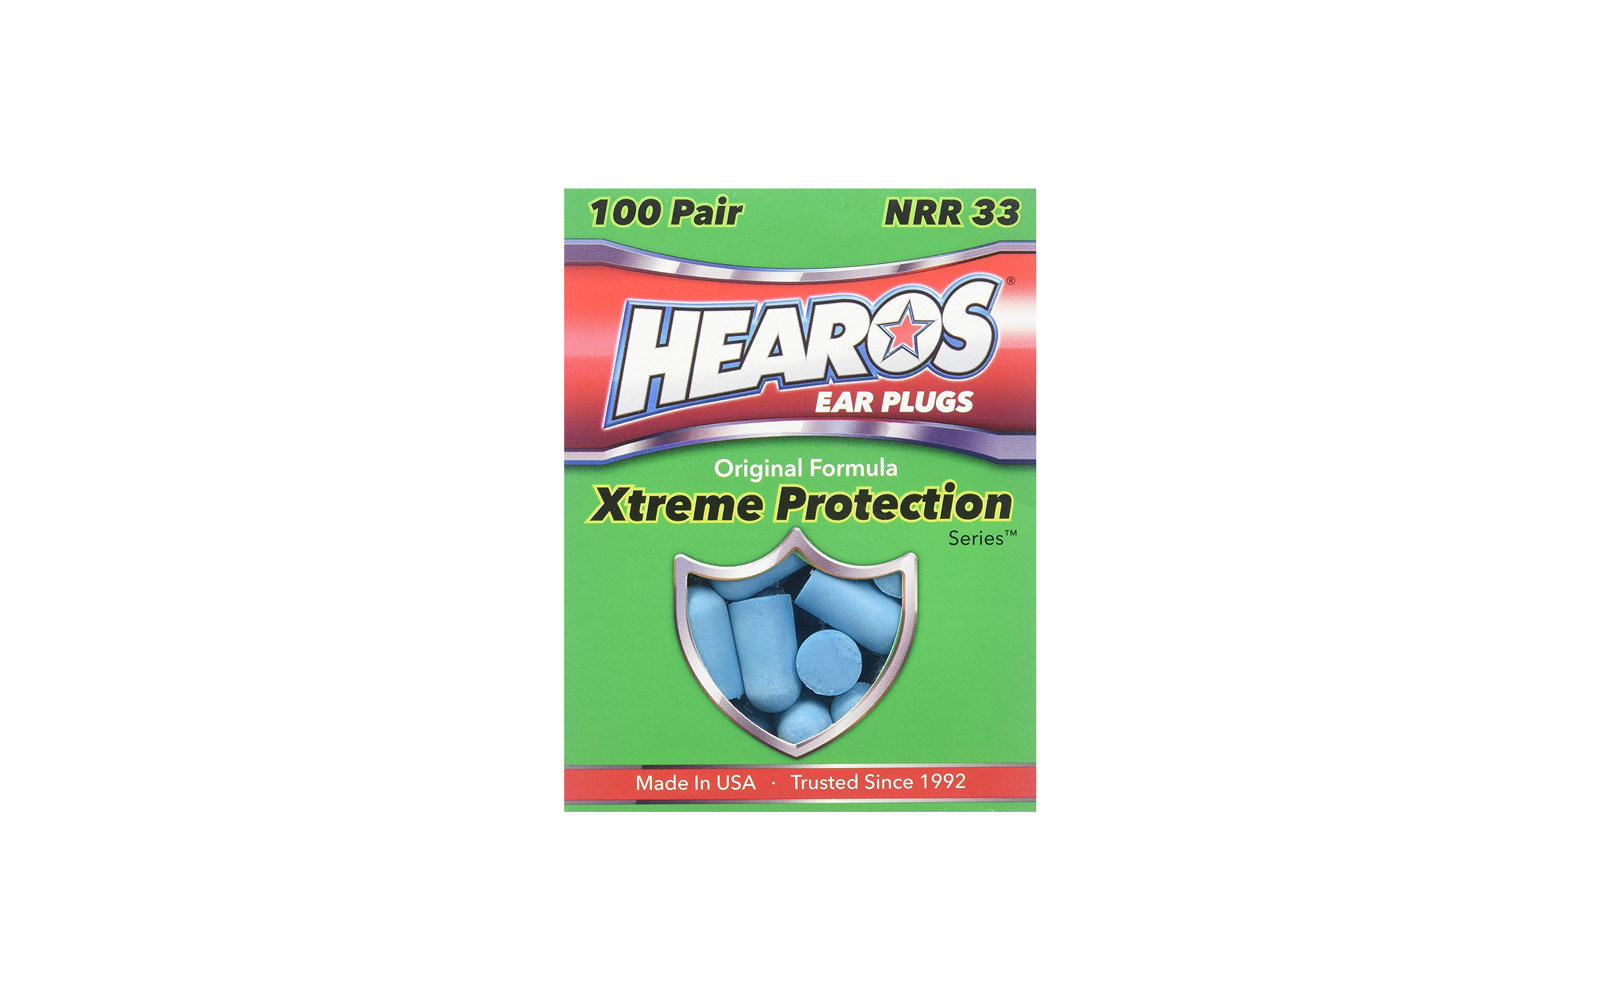 Best for Noise-cancelling: Hearos Xtreme 100 Pair Foam Earplugs